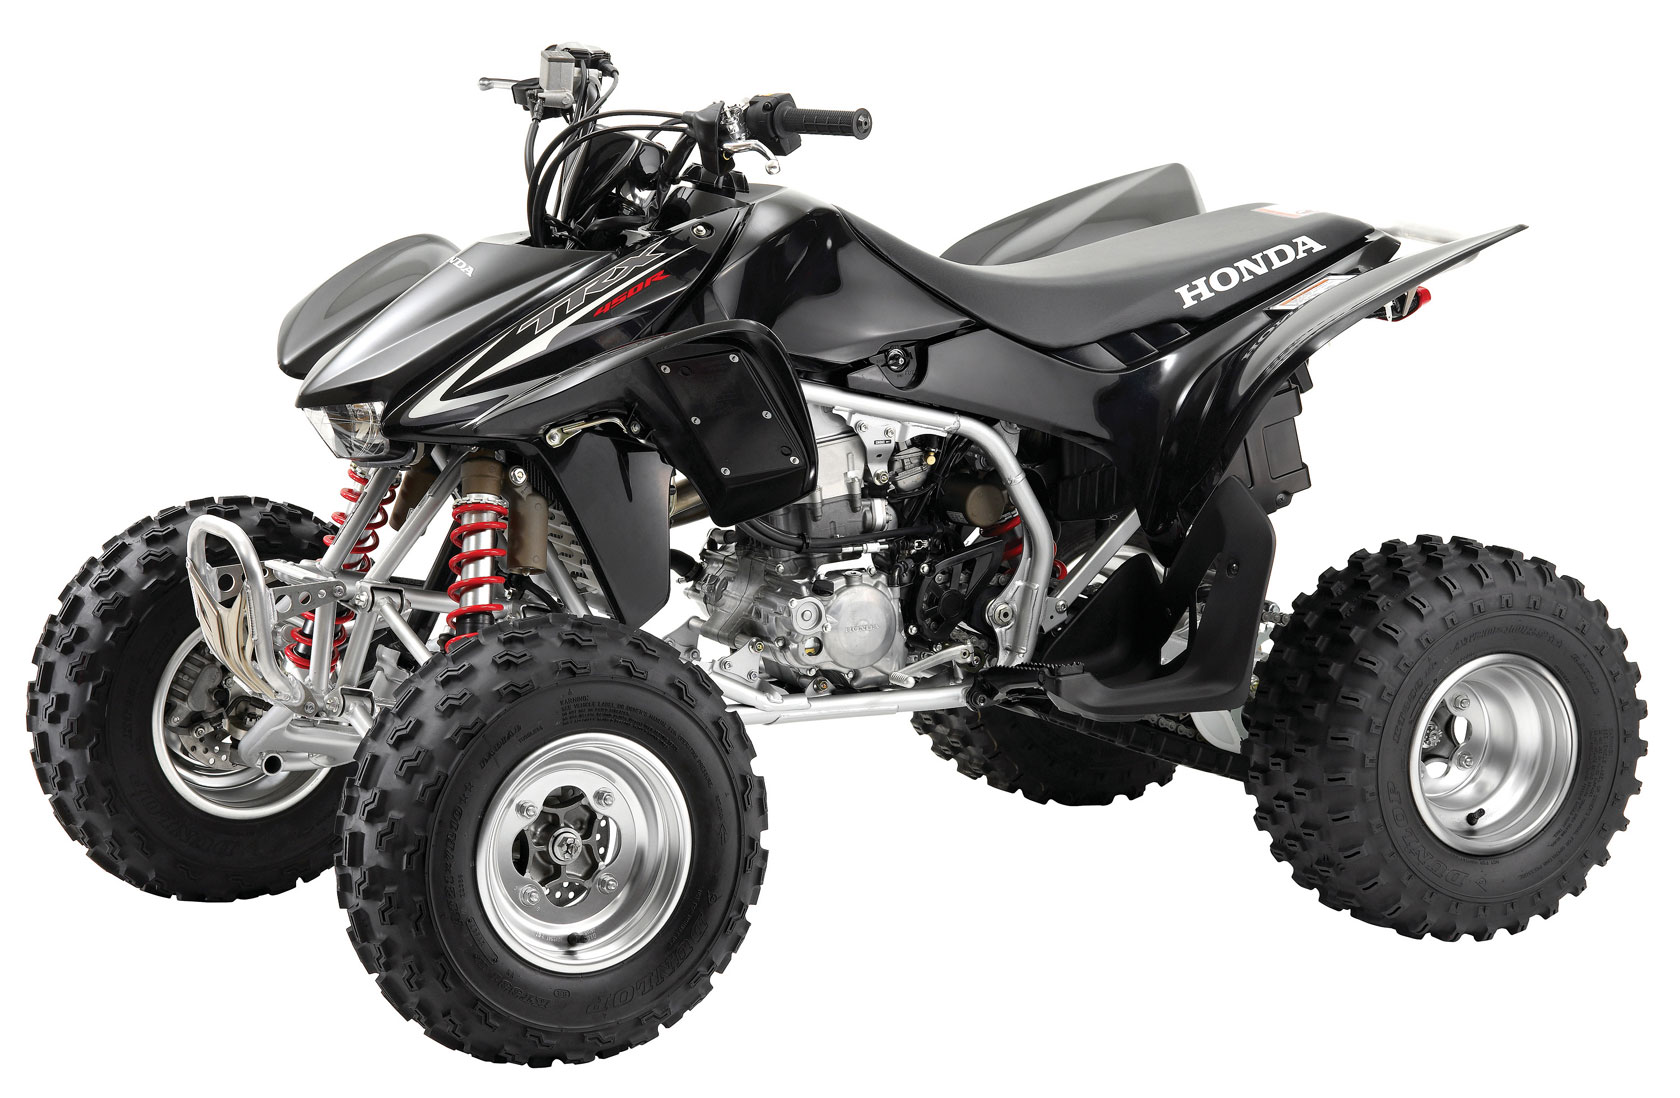 ... HONDA TRX450ER (Electric Start) (2008 - 2009)